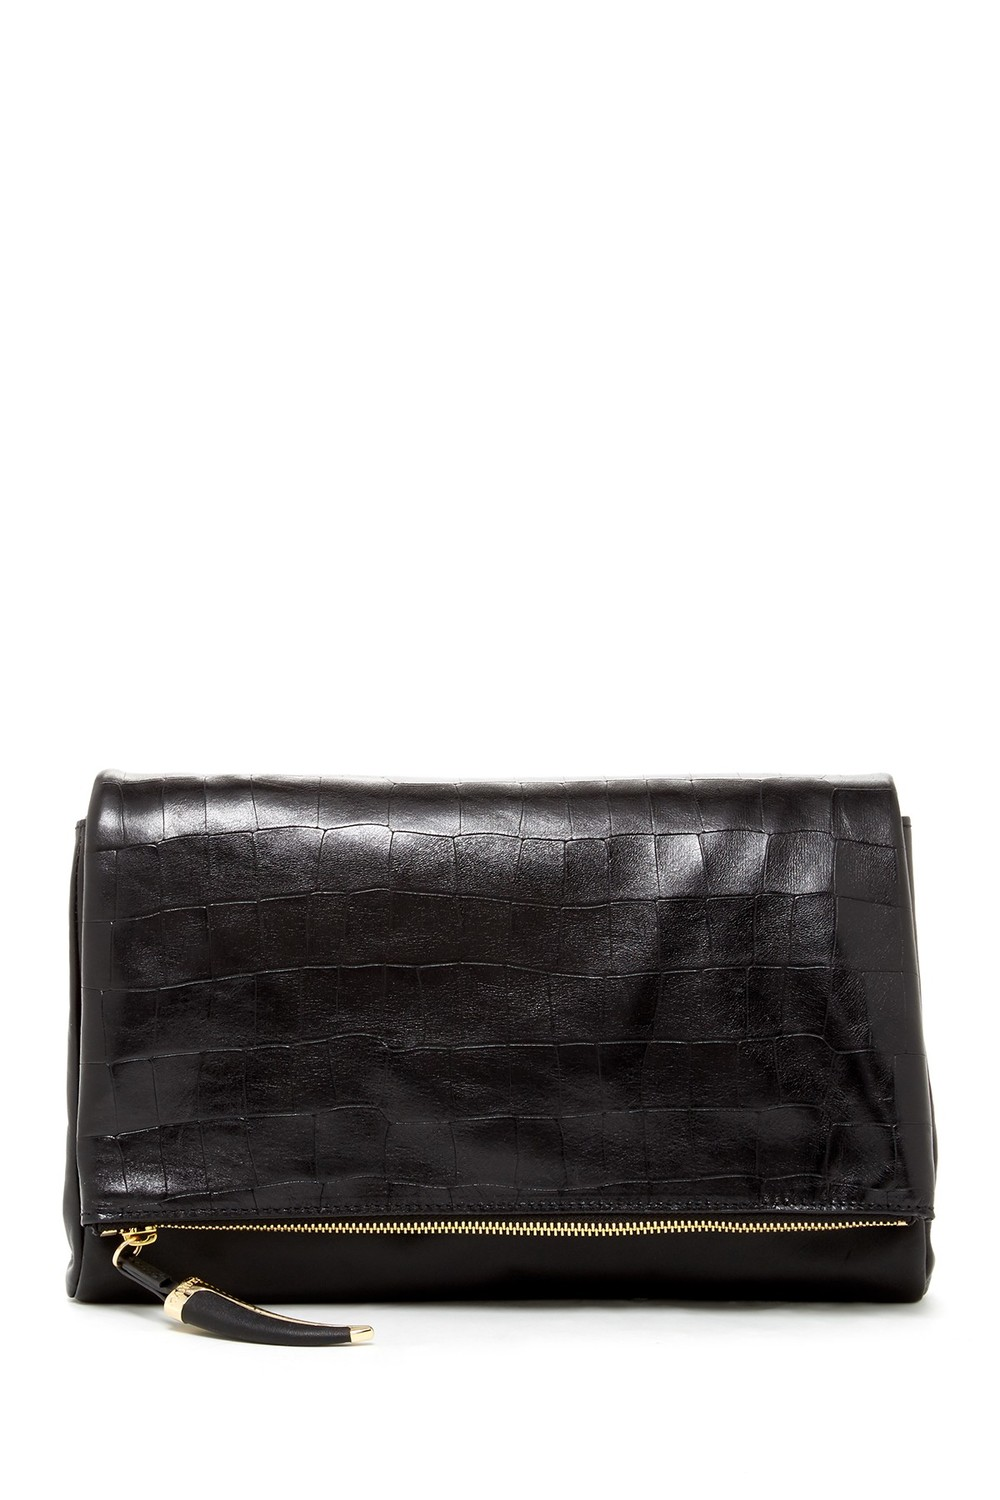 Vince Camuto Cal Flap Oversized Clutch. Nordstrom Rack. Was: $228 Now: $119.